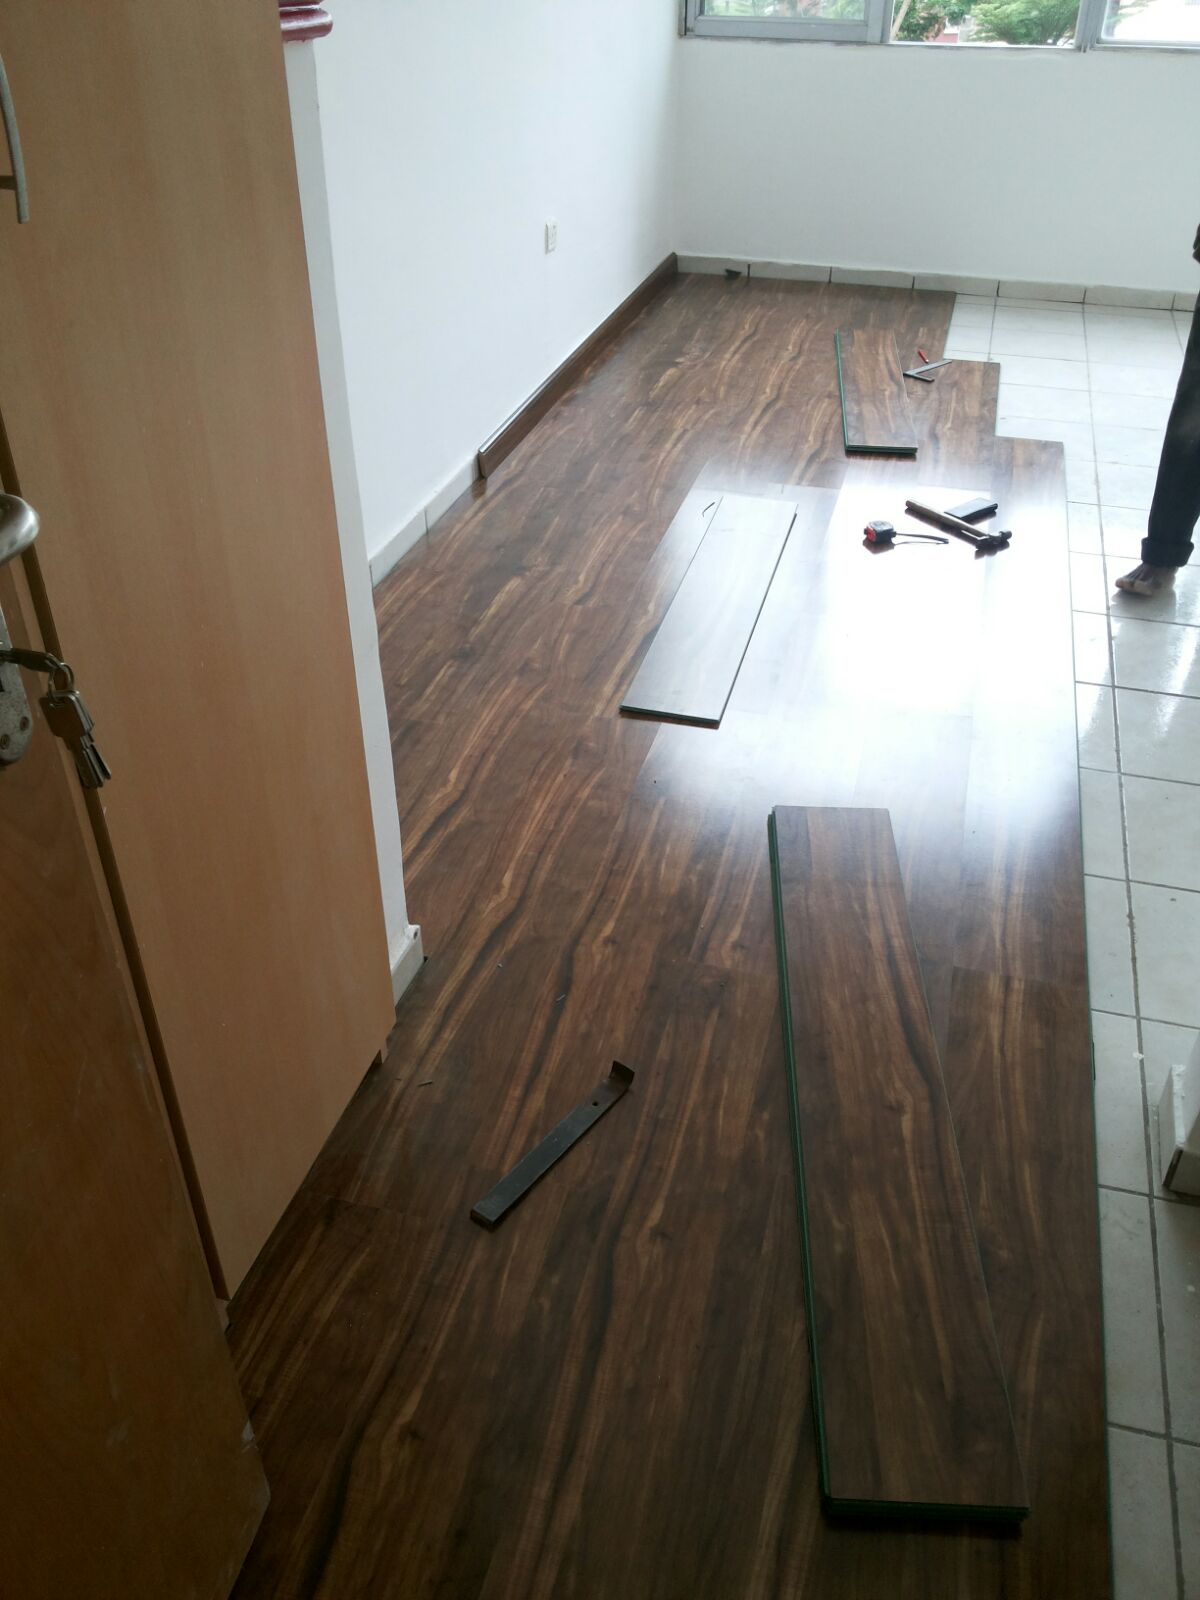 3D Flooring  Laminated Wooden Floor  Adverts  Nigeria